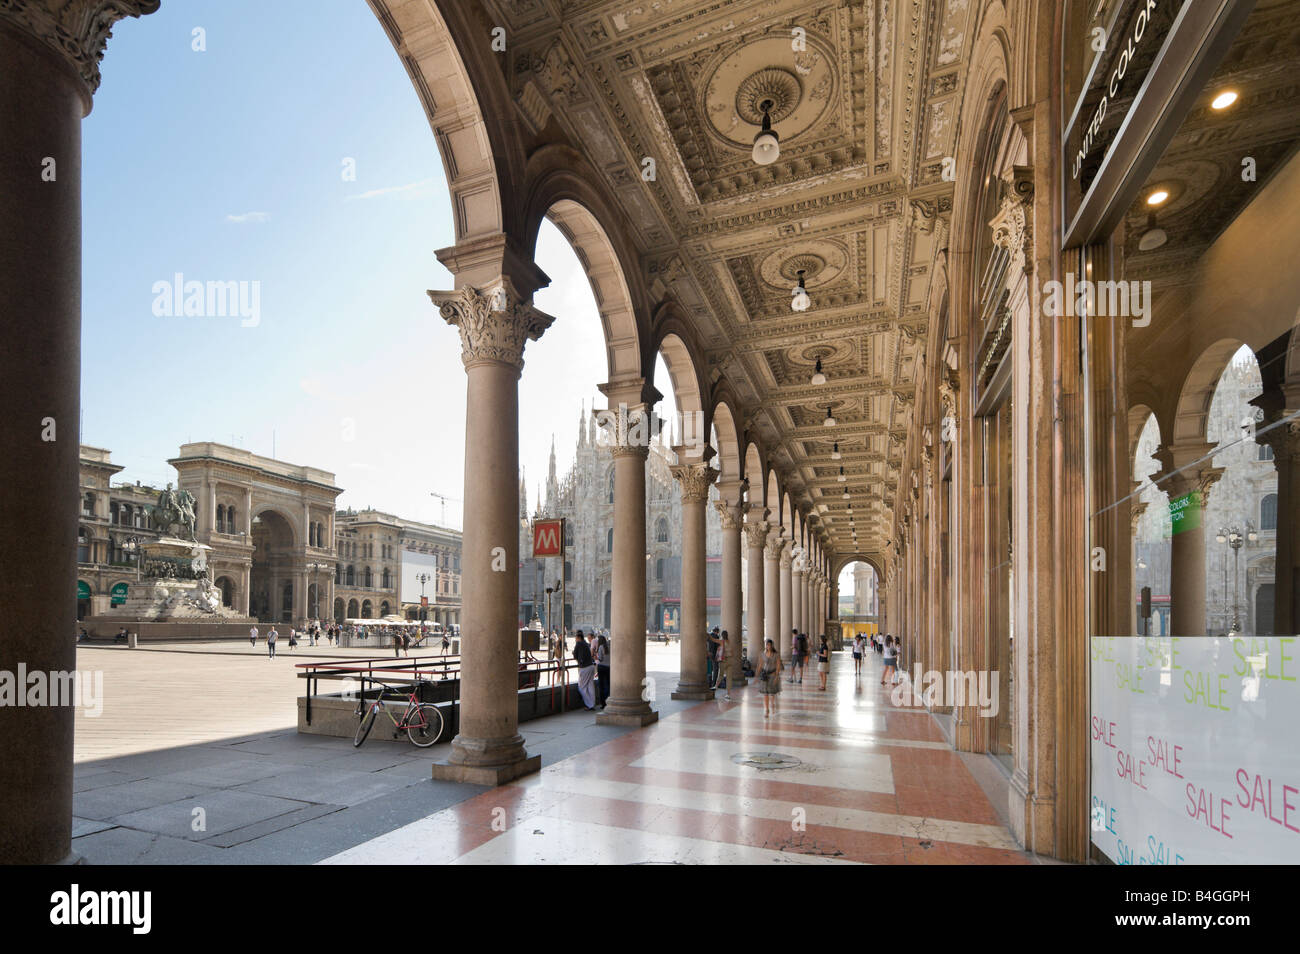 Shopping Arcade overlooking the Cathedral and Galleria Vittorio Emanuele II, Piazza del Duomo, Milan, Lombardy, - Stock Image